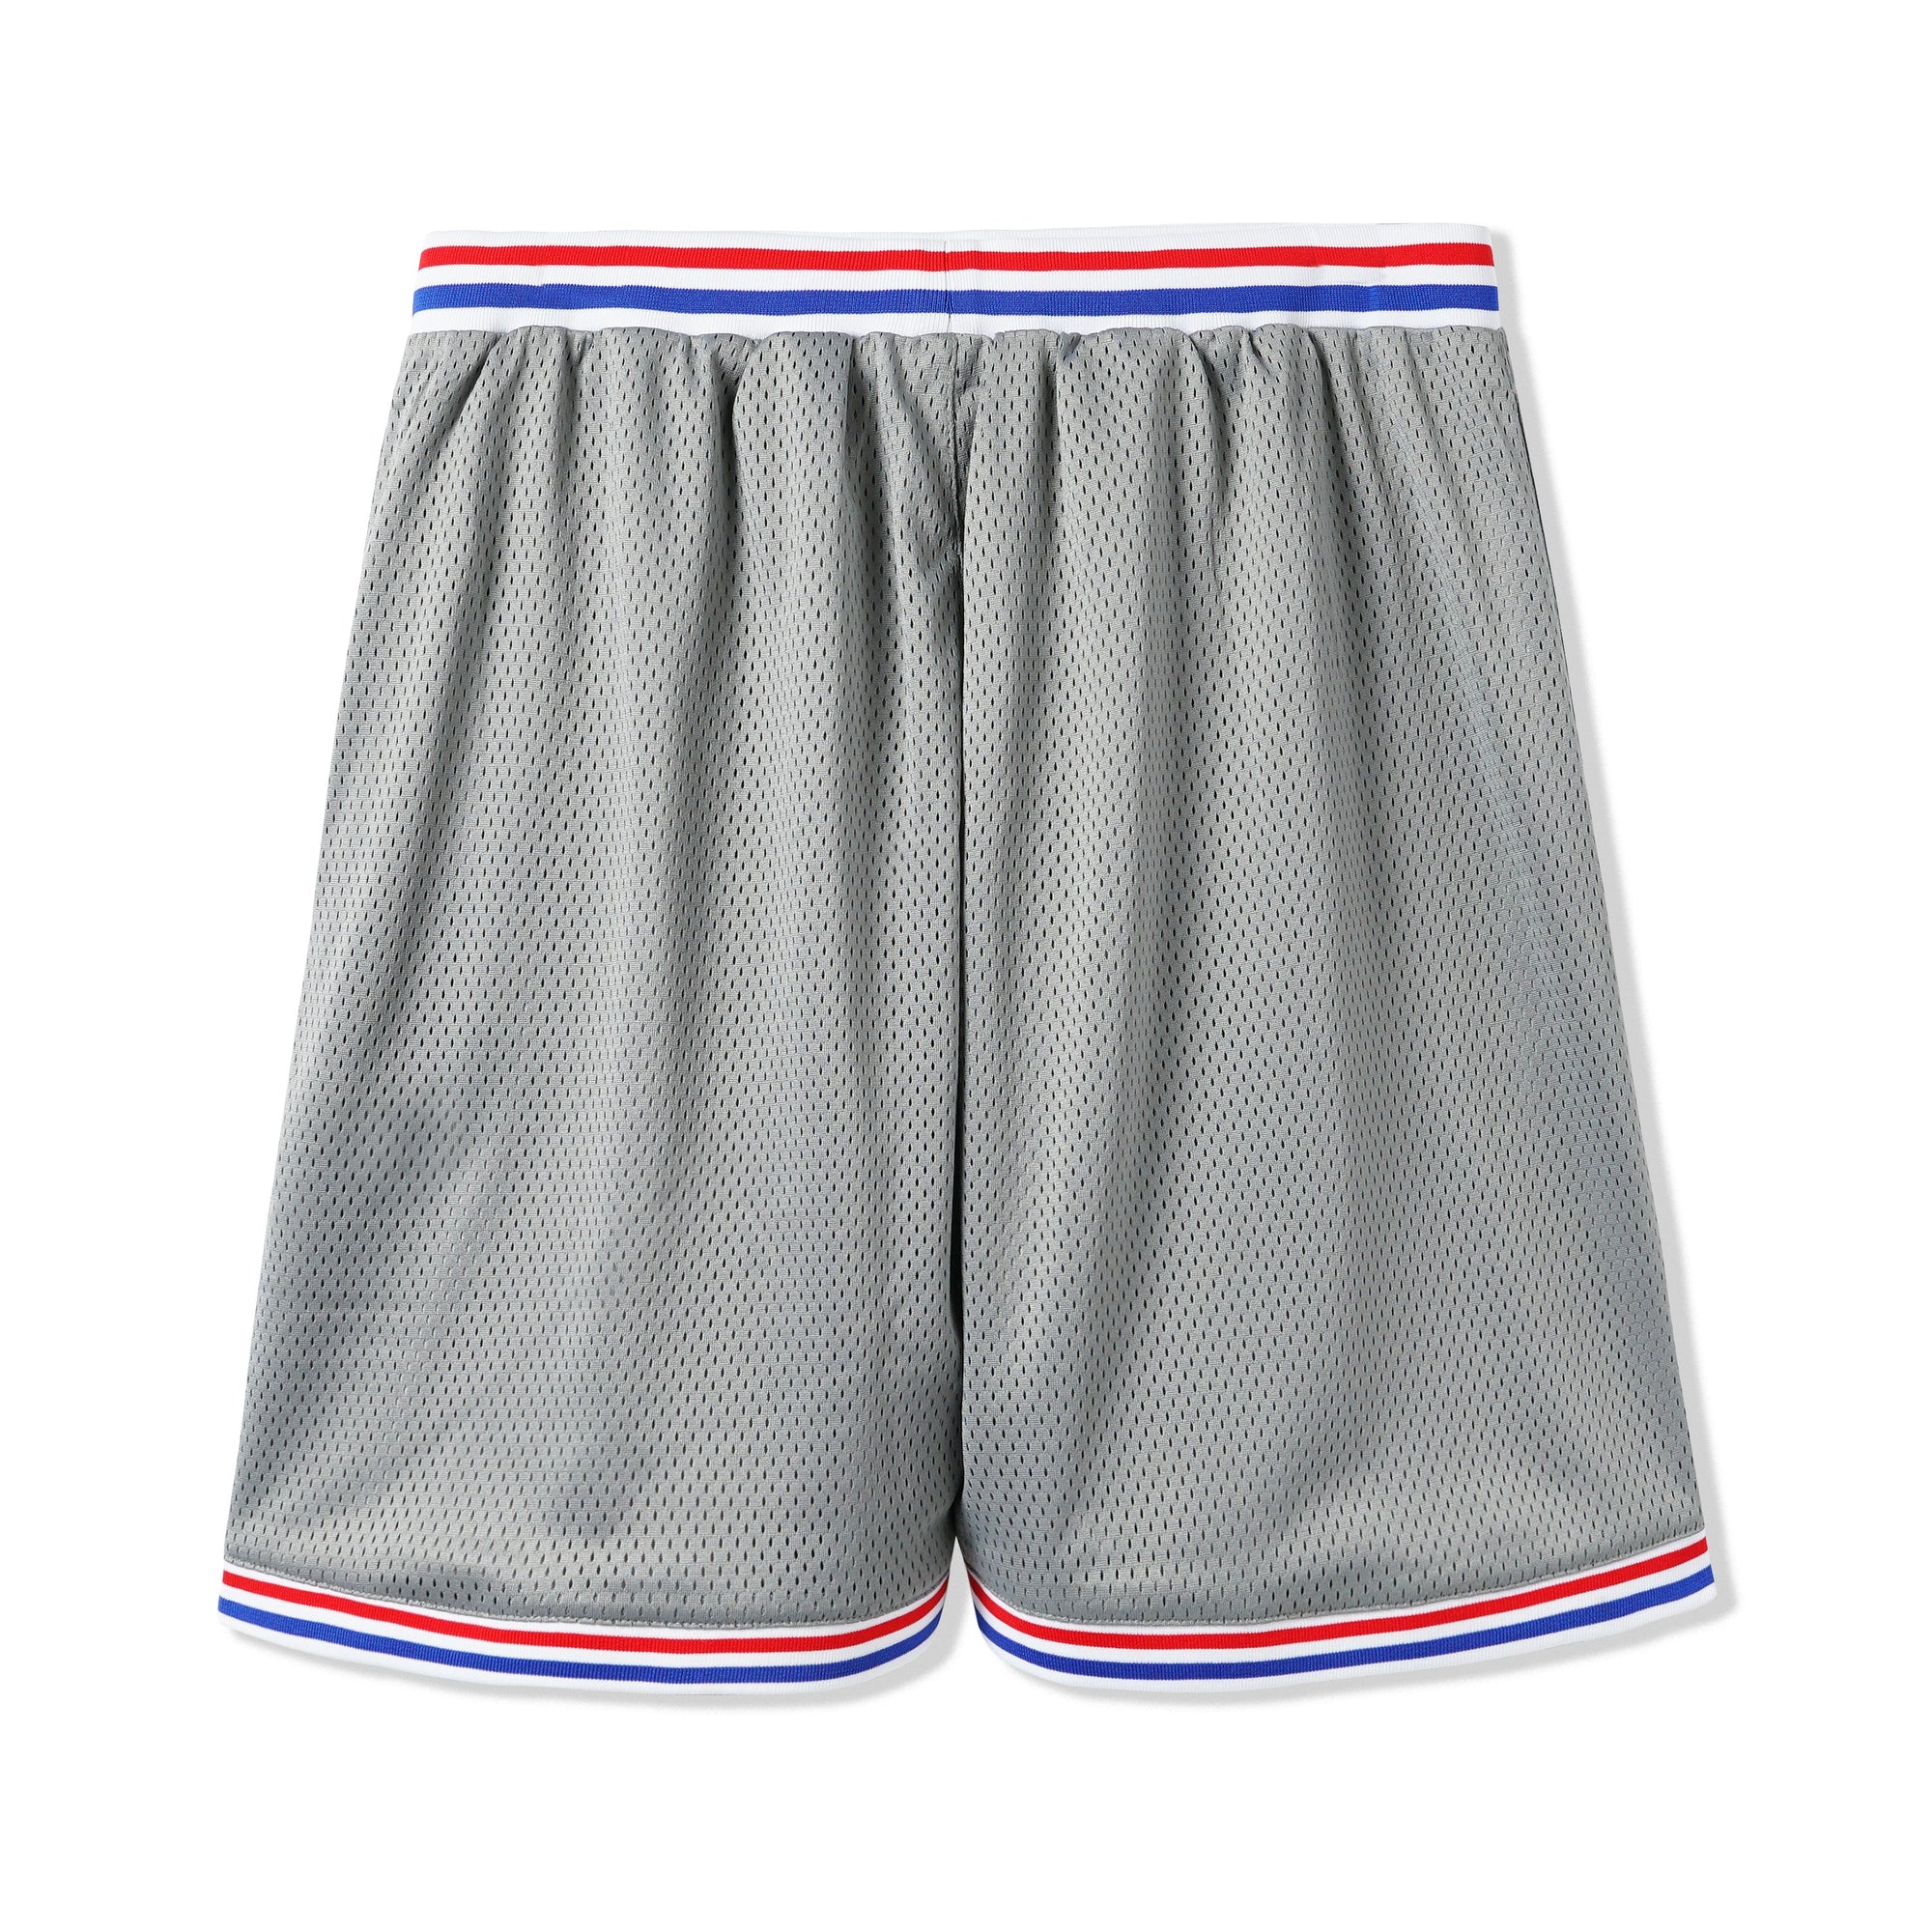 Butter Goods Worldwide Mesh Shorts Product Photo #2